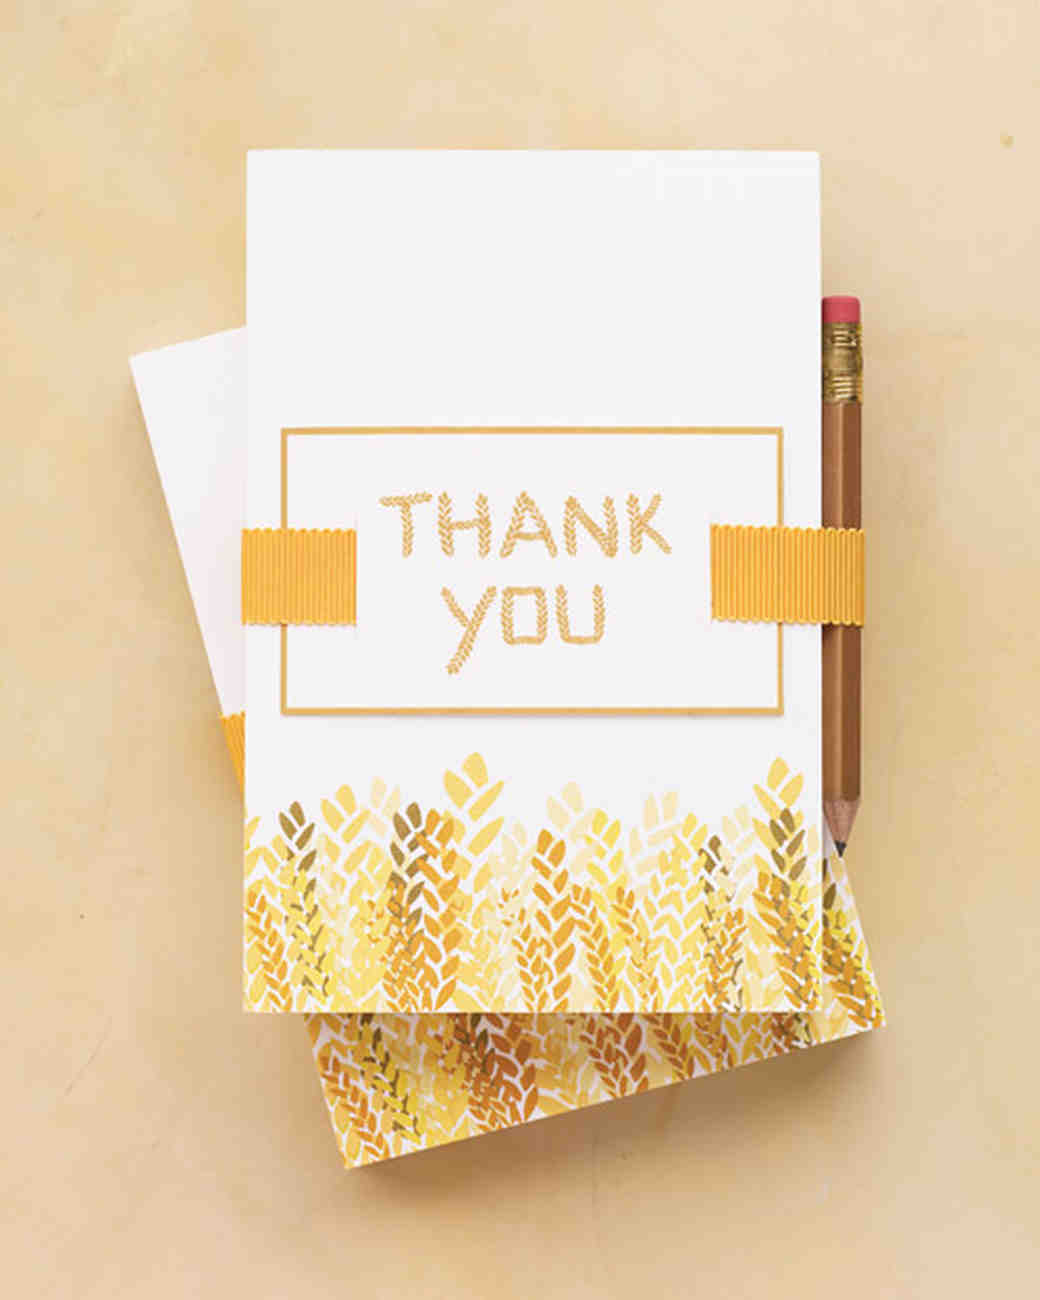 Never received thank you for wedding gift